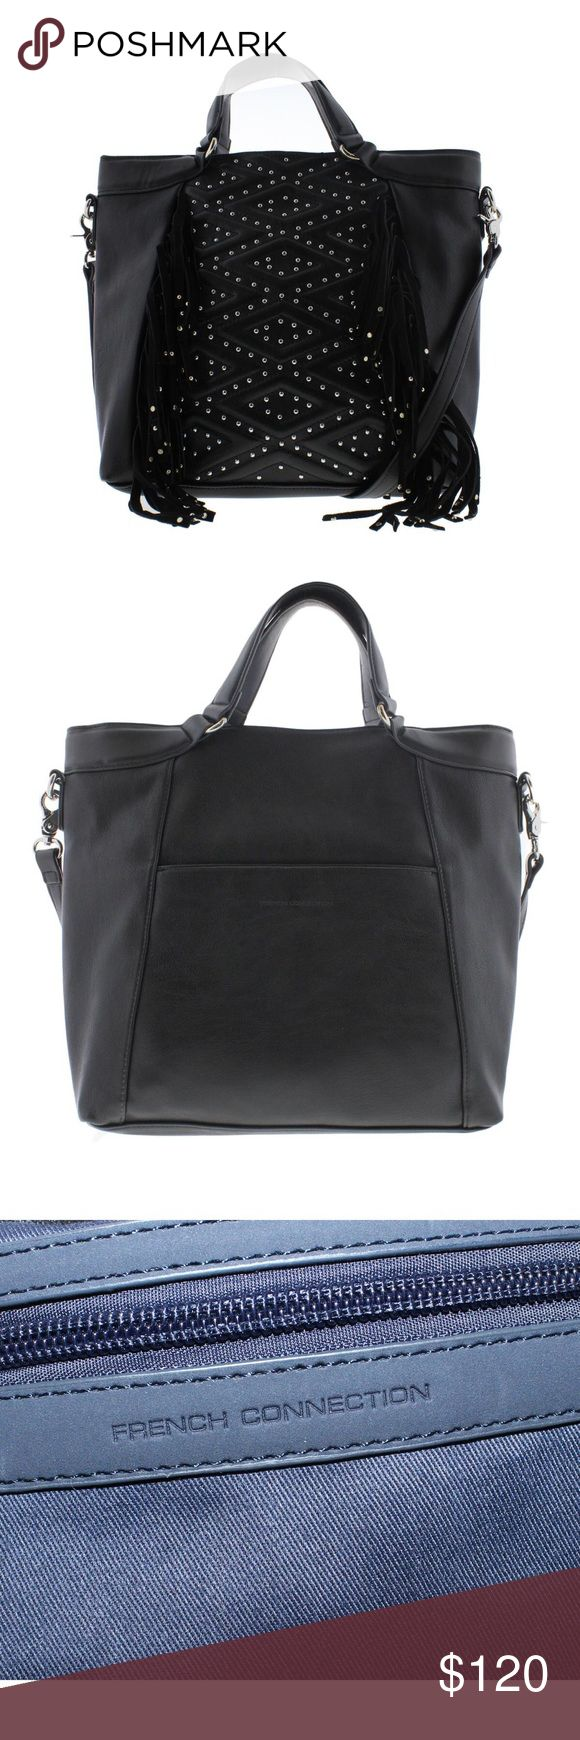 French Connection Cassidy Black Tote Handbag French Connection Cassidy Black Tote Handbag Purse Large.   Manufacturer Color: Black Condition: New with tags Style Type: Tote Bag Collection: French Connection Handle Type: Double Compartment: Open Slip Closure: Magnet Bag Height (Inches): 11 1/2 Inches Bag Width (Inches): 14 Inches Bag Depth (Inches): 3 1/2 Inches Strap Drop (Inches): 19 Inches Material: PU/Cow Suede/Cotton Fabric Type: Faux Leather Specialty: Fringe Removable Strap Included…